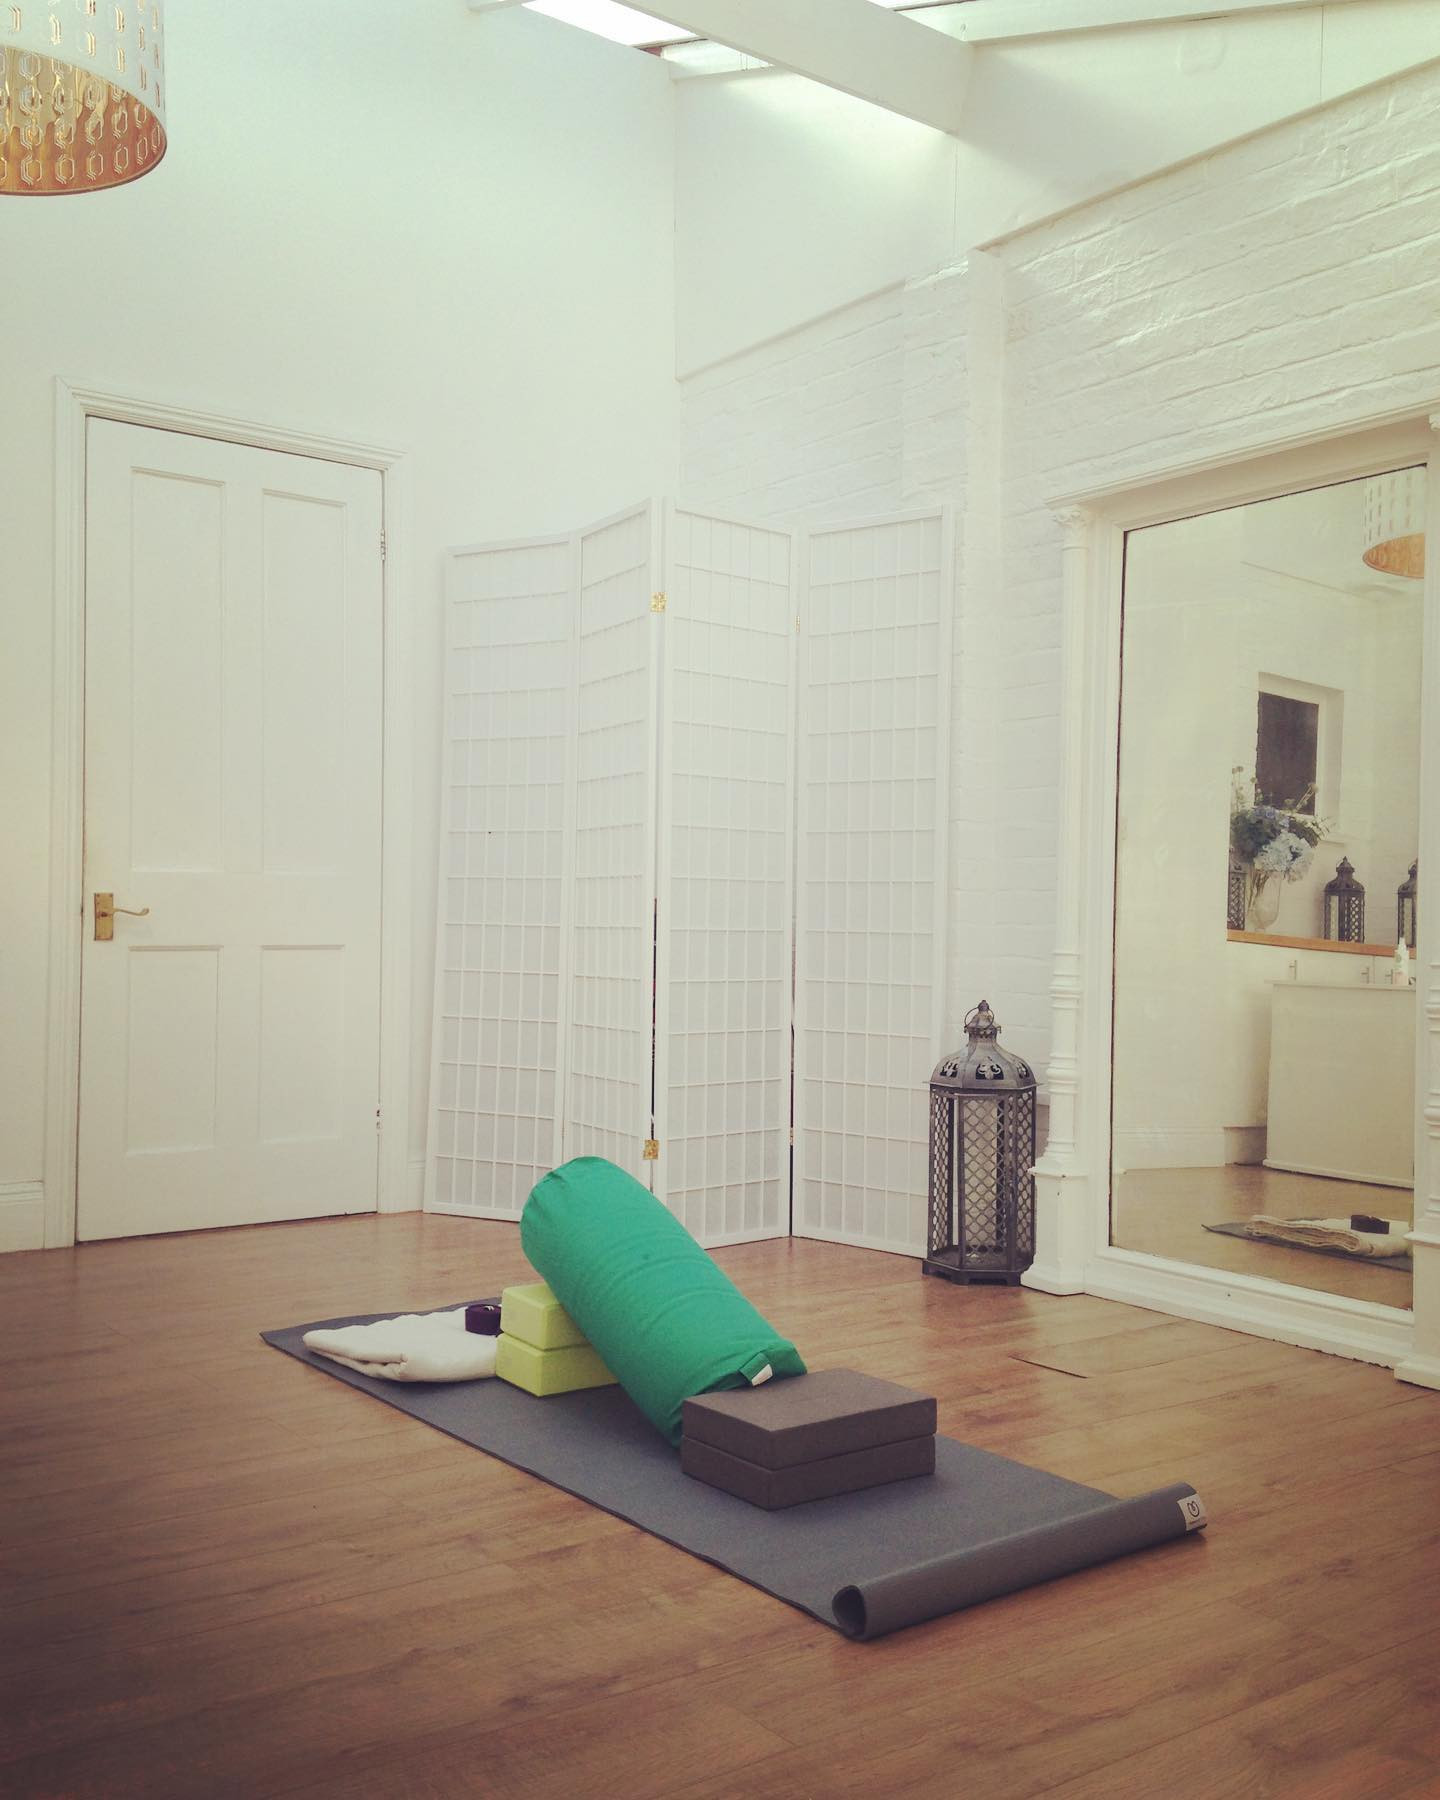 Yoga therapy inspired 1-1 sessions